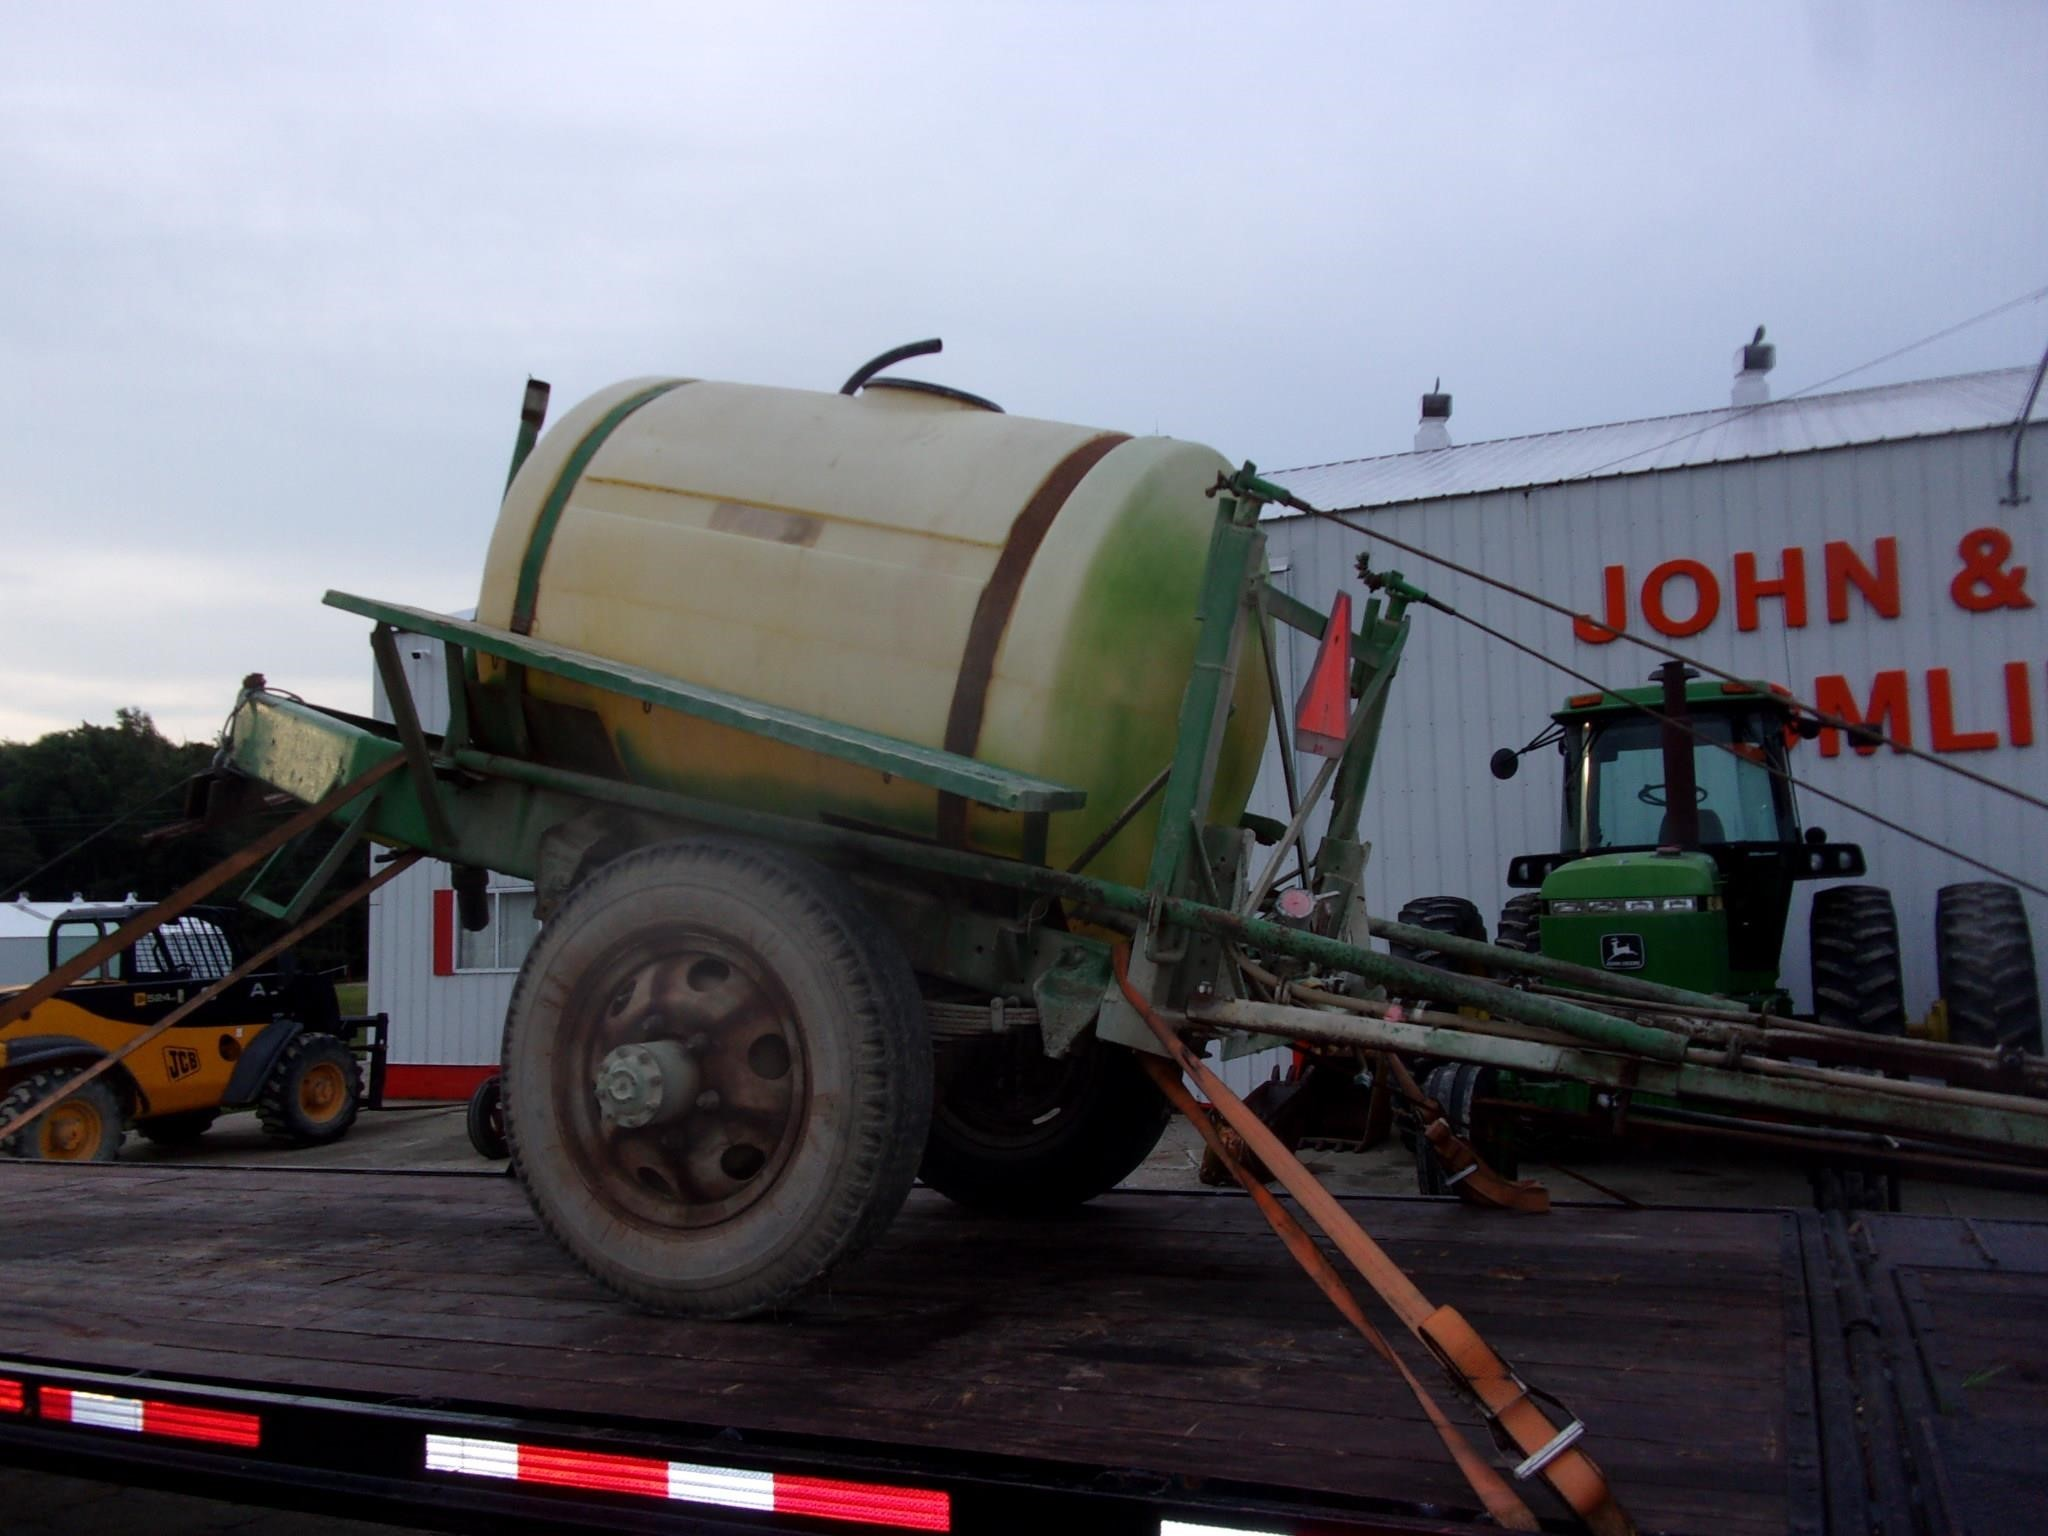 1990 Top Air 500 Pull-Type Sprayer